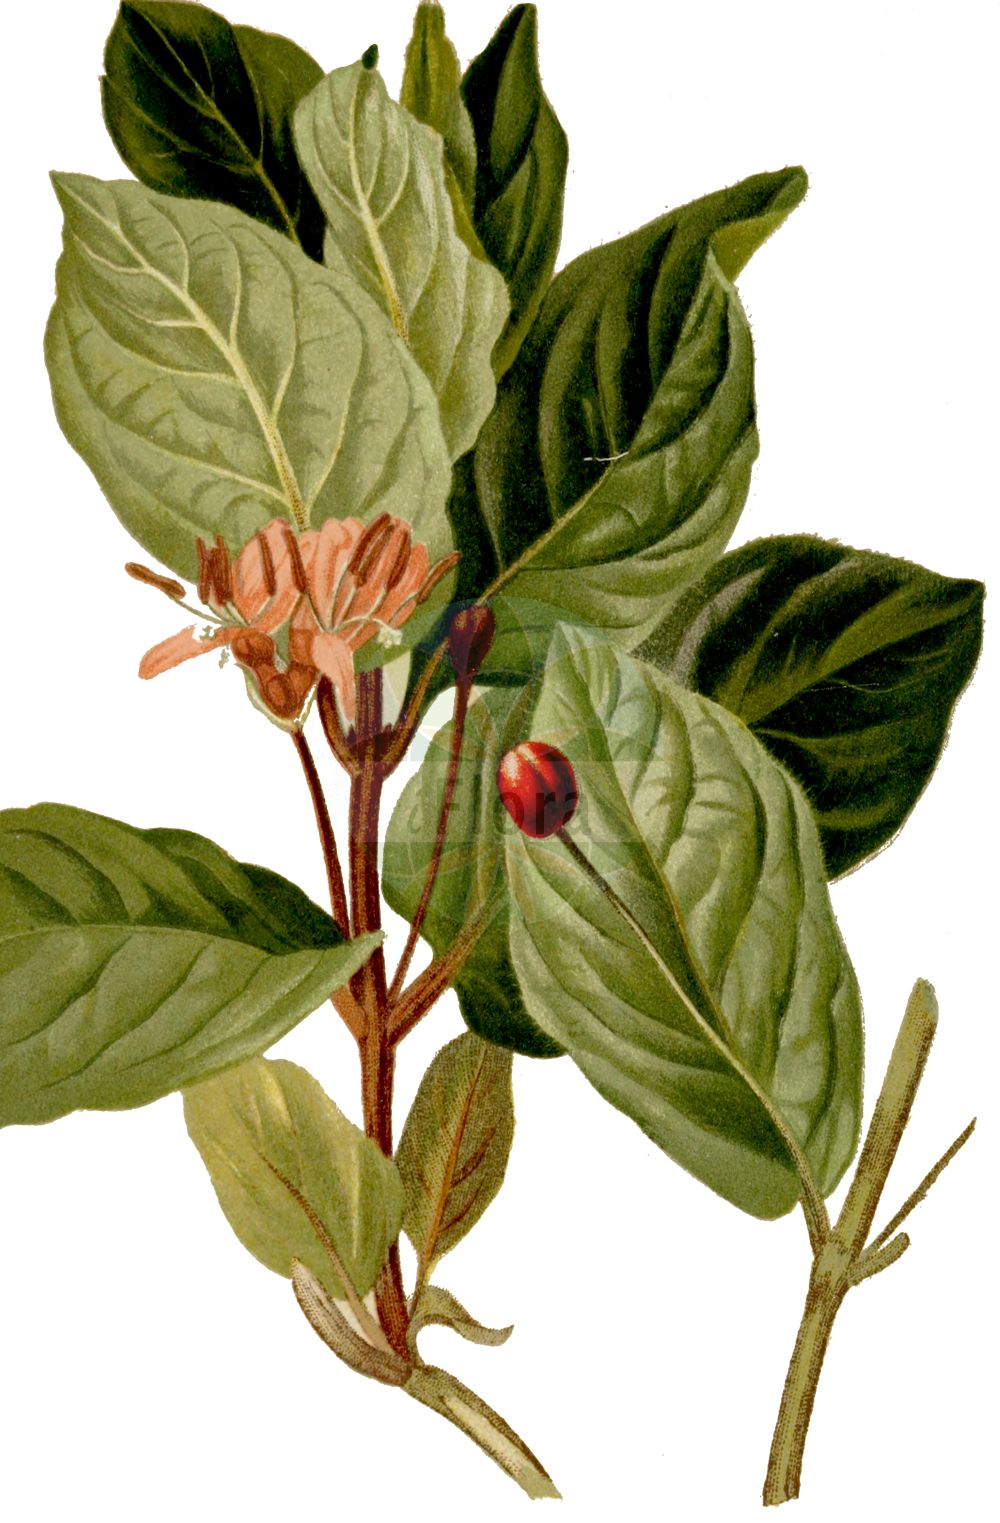 Historische Abbildung von Lonicera alpigena (Alpen-Heckenkirsche - Alpine Honeysuckle). Das Bild zeigt Blatt, Bluete, Frucht und Same. ---- Historical Drawing of Lonicera alpigena (Alpen-Heckenkirsche - Alpine Honeysuckle).The image is showing leaf, flower, fruit and seed.(Lonicera alpigena,Alpen-Heckenkirsche,Alpine Honeysuckle,Lonicera alpigena,Alpen-Heckenkirsche,Alpen-Geissblatt,Alpine Honeysuckle,Cherry Woodbine,Lonicera,Heckenkirsche,Honeysuckle,Caprifoliaceae,Geissblattgewaechse,Honeysuckle family,Blatt,Bluete,Frucht,Same,leaf,flower,fruit,seed,Hartinger & von Dalla Torre (1806f))